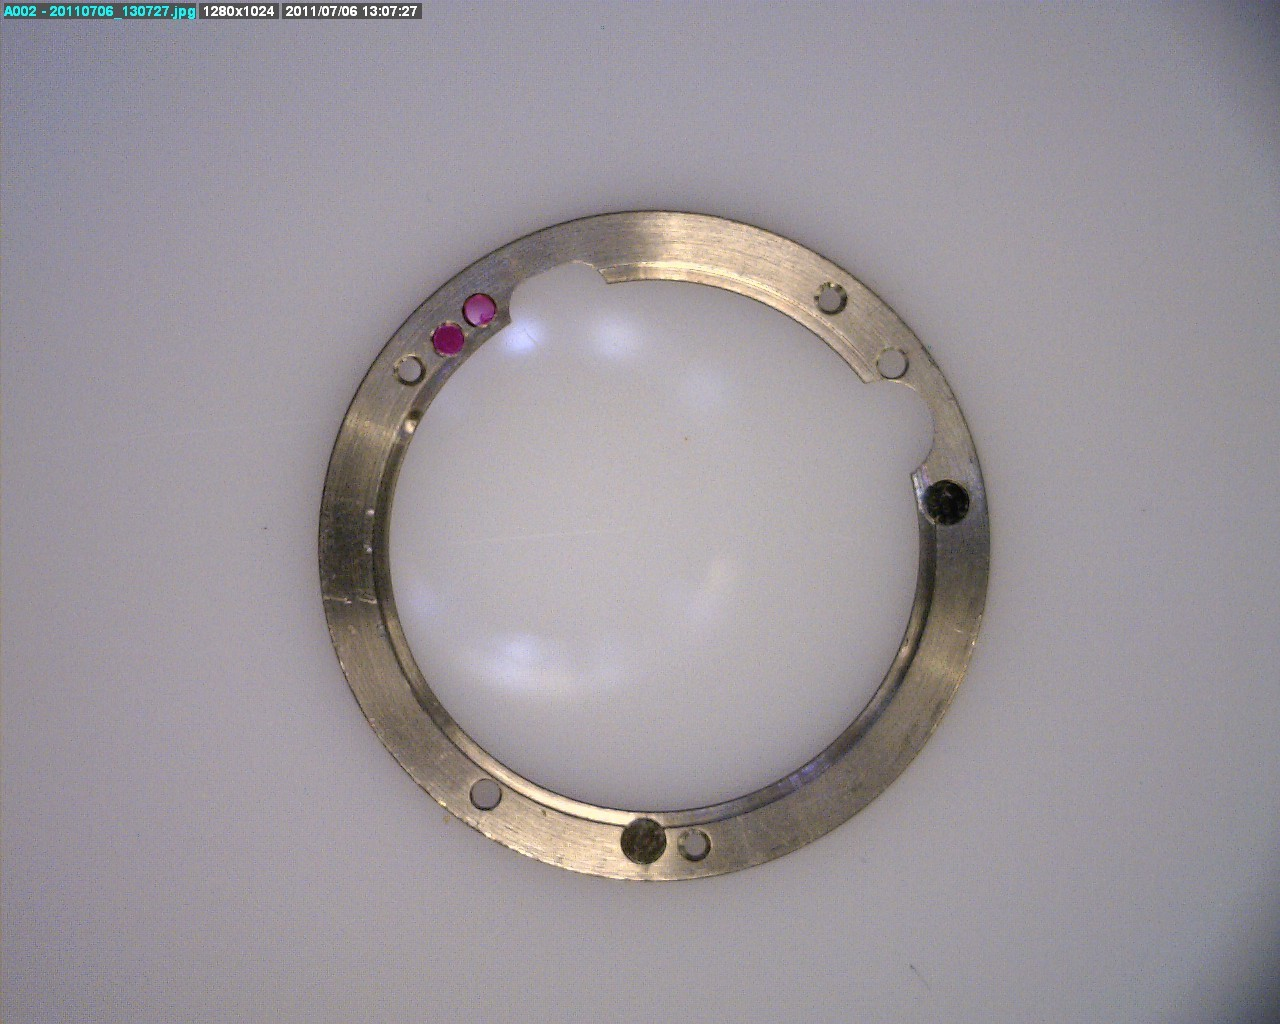 Rolex 1530 70 Parts Everything You Will Need For This Movement